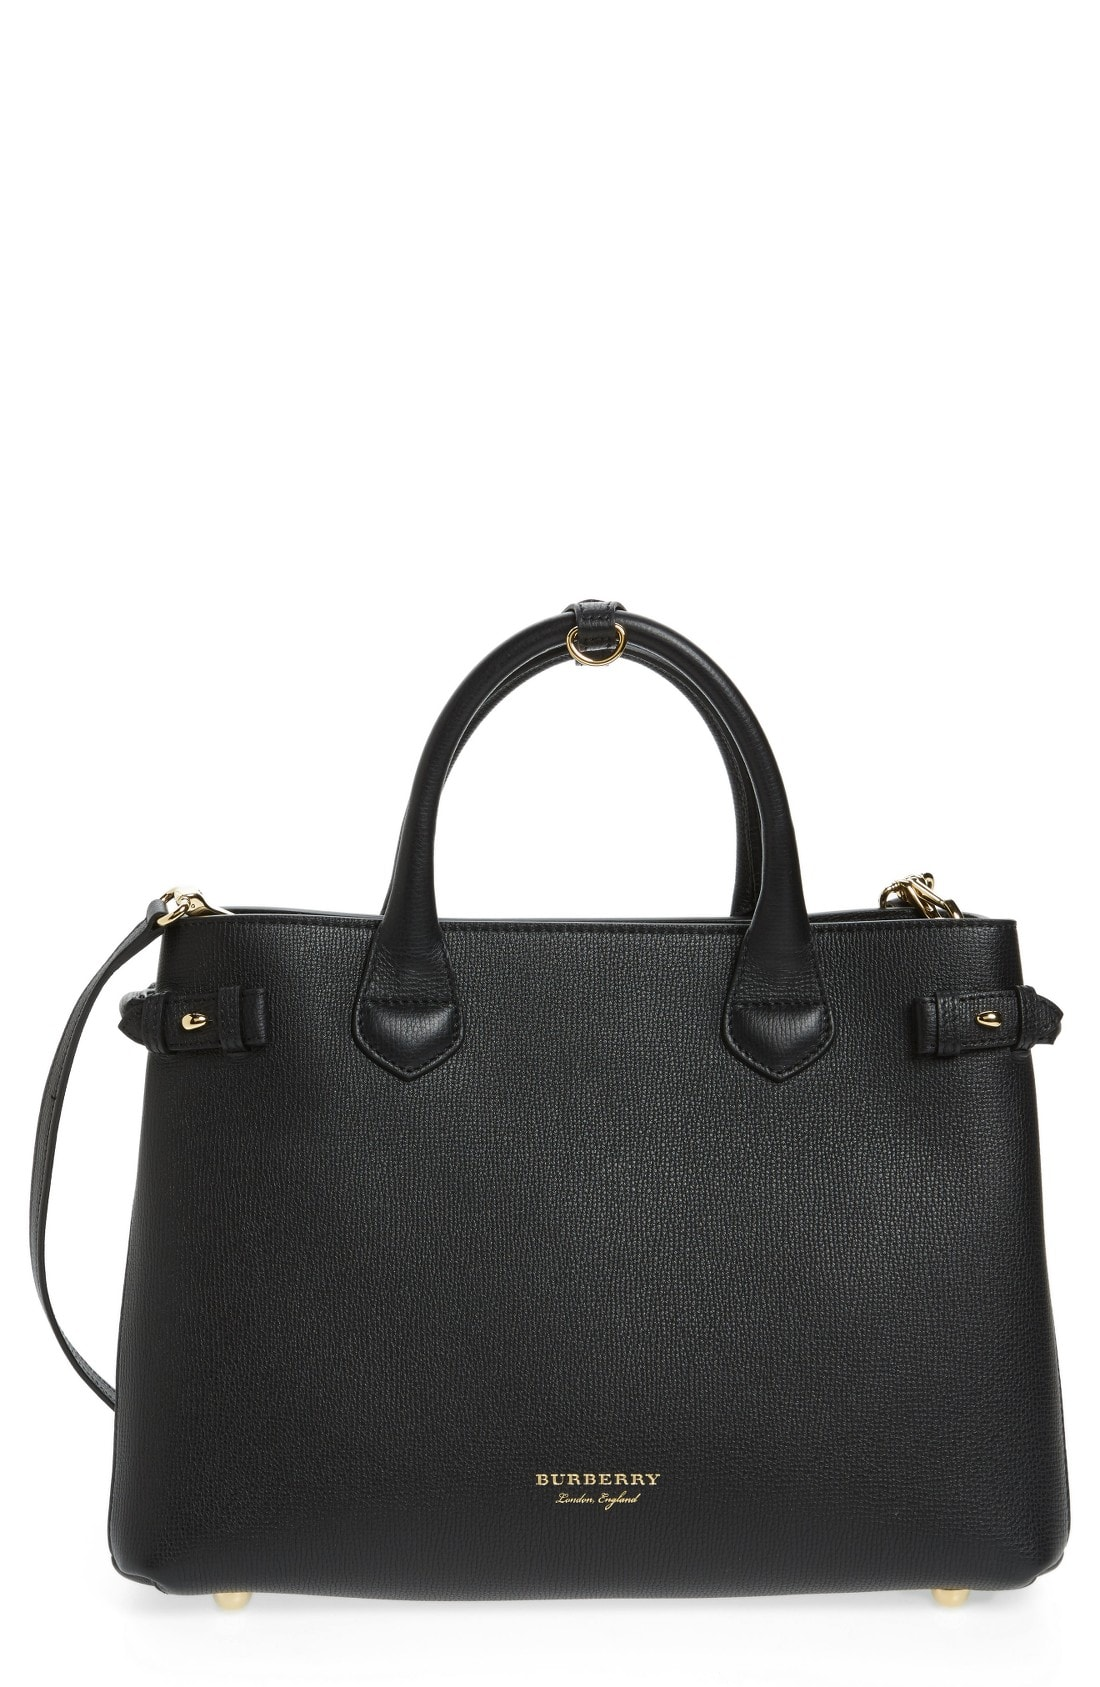 Burberry Medium Banner House Check Leather Tote